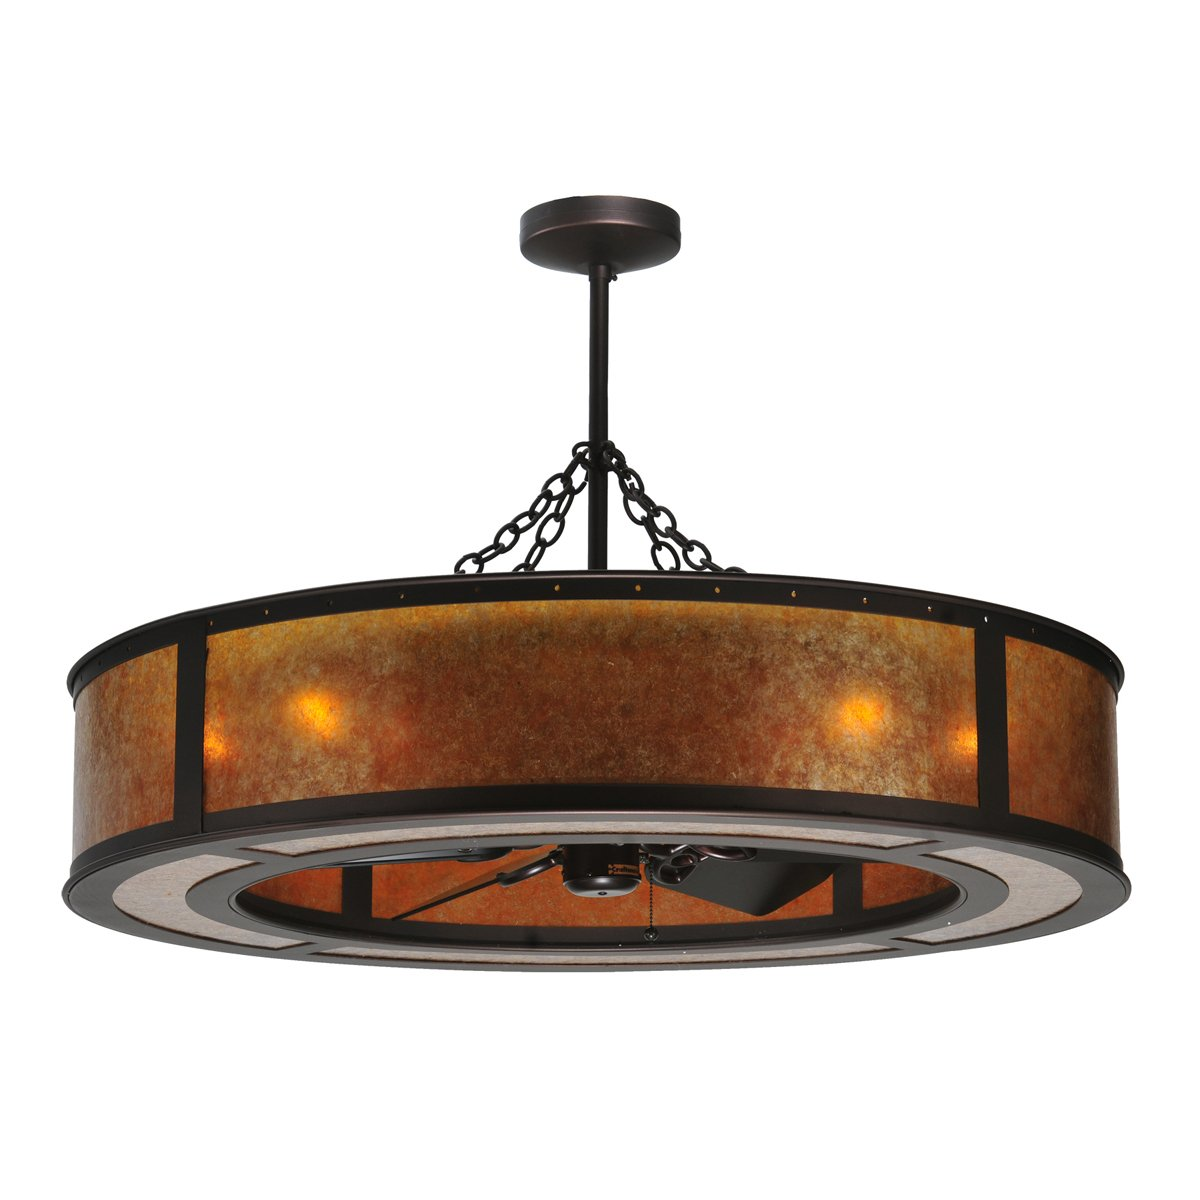 Mission Style Ceiling Light Craftsman Style Ceiling Light Illuminate Entire Rooms